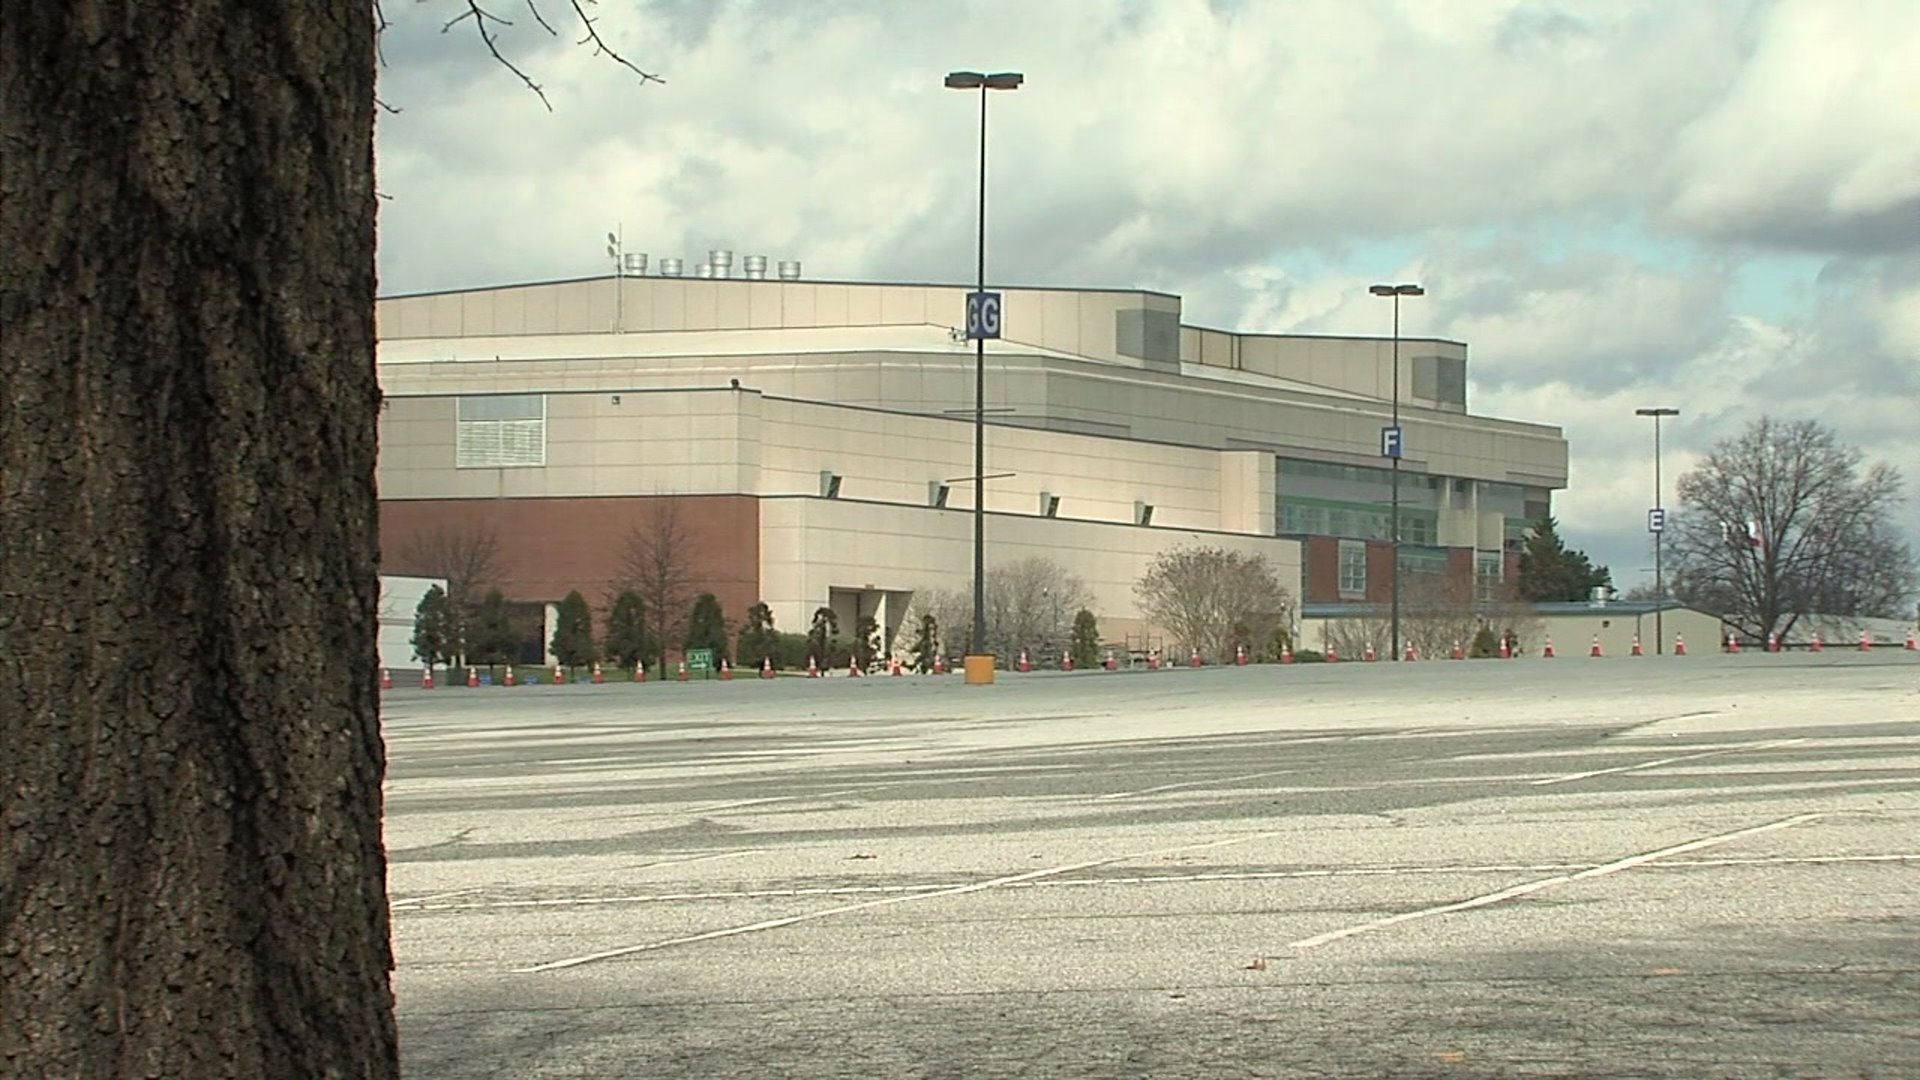 Greensboro Coliseum (WGHP file photo)